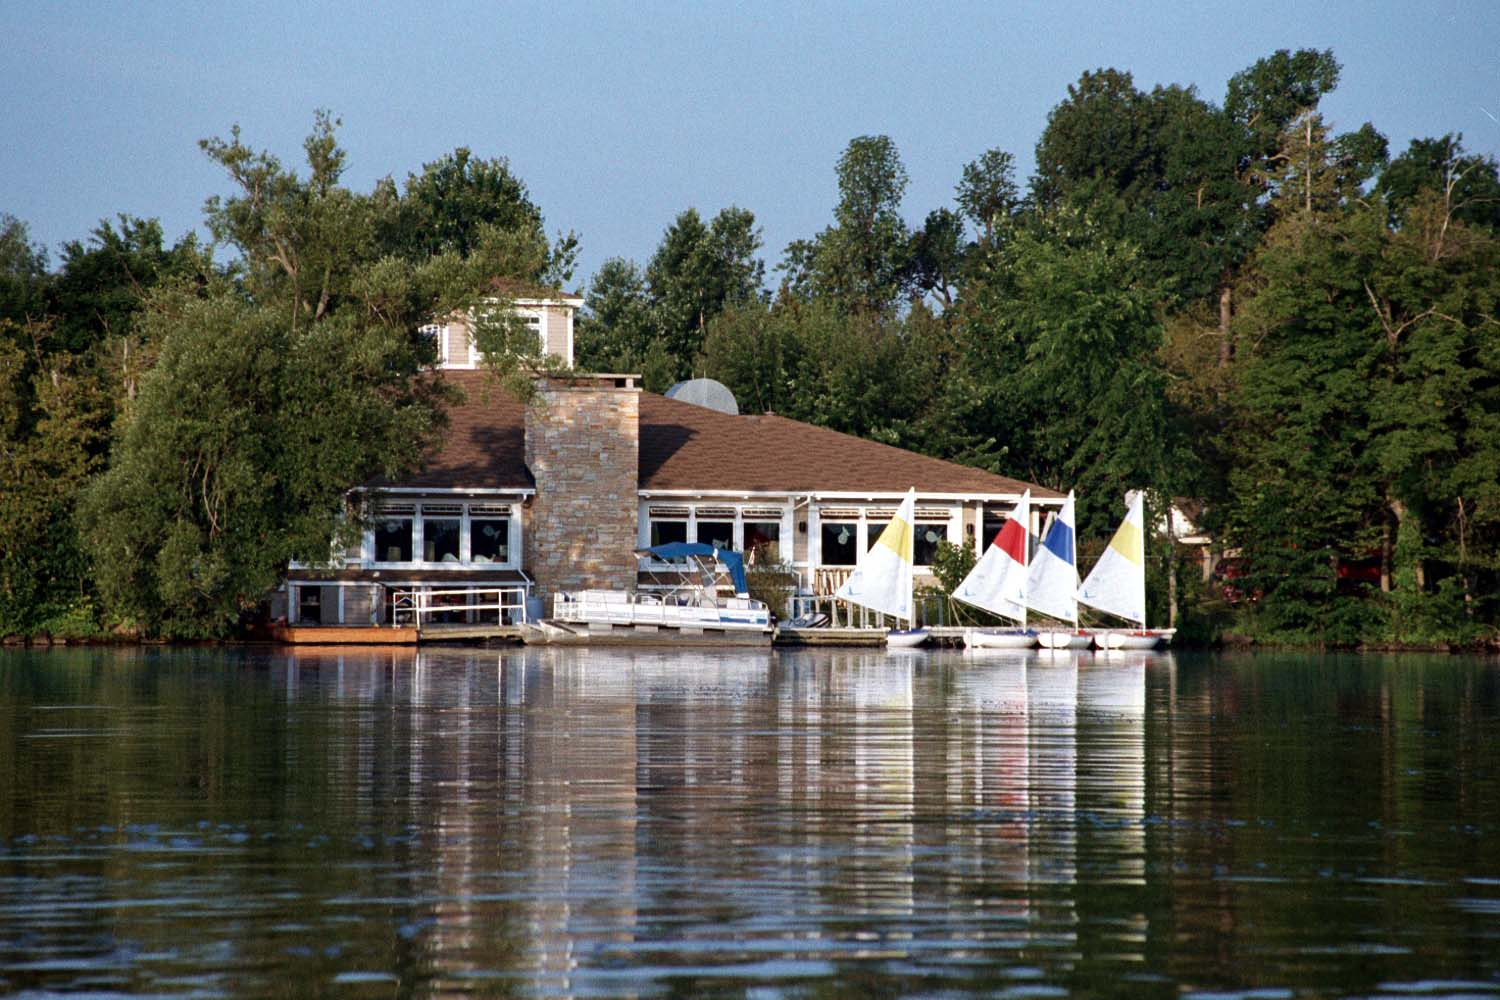 The Dinning Hall at Merrywood Camp viewed from the lake.